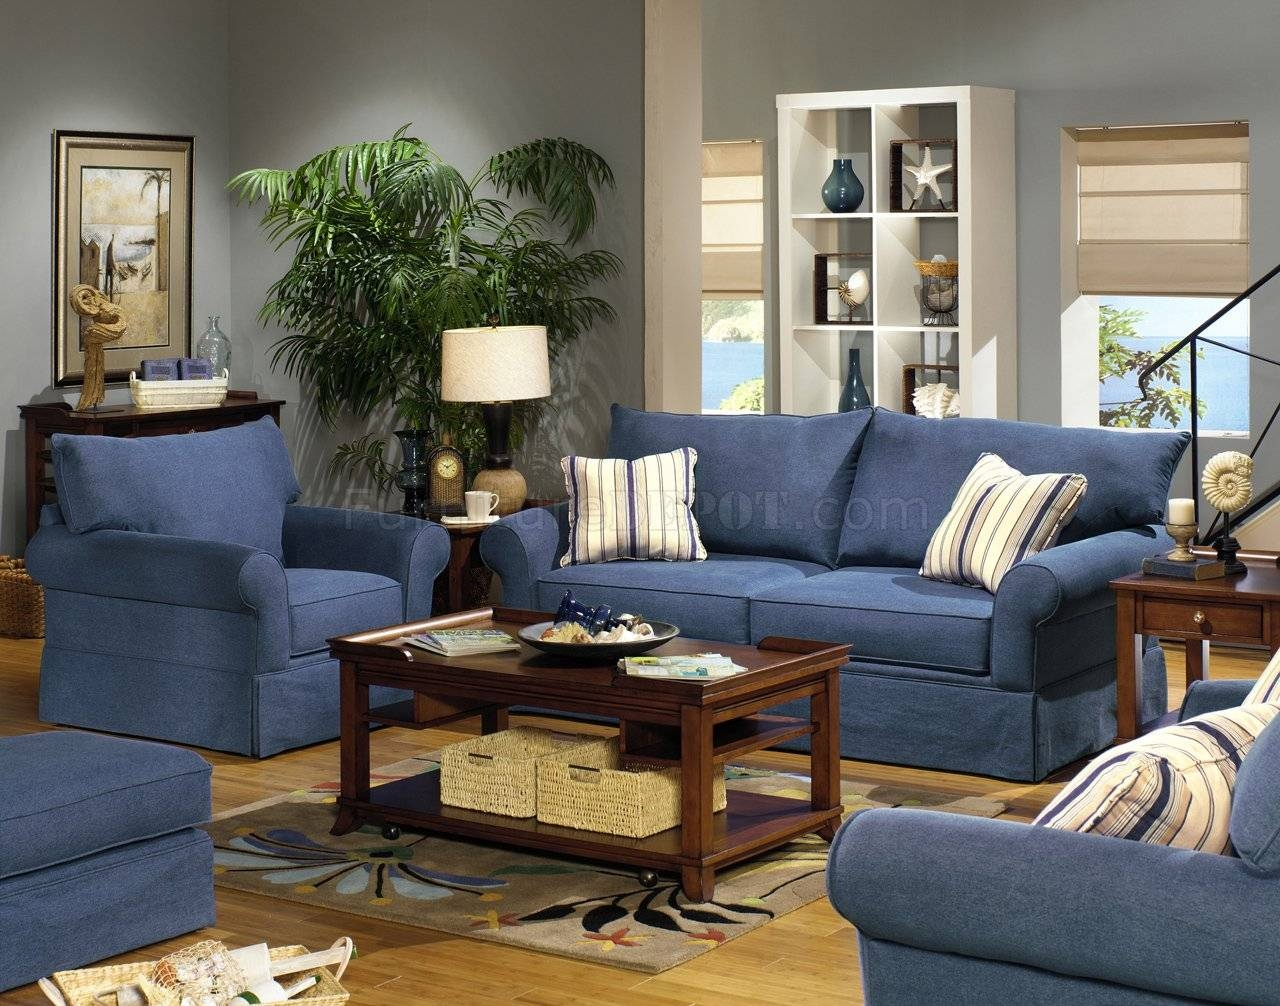 Blue Denim Fabric Modern Sofa & Loveseat Set W/options intended for Denim Sofas And Loveseats (Image 1 of 15)